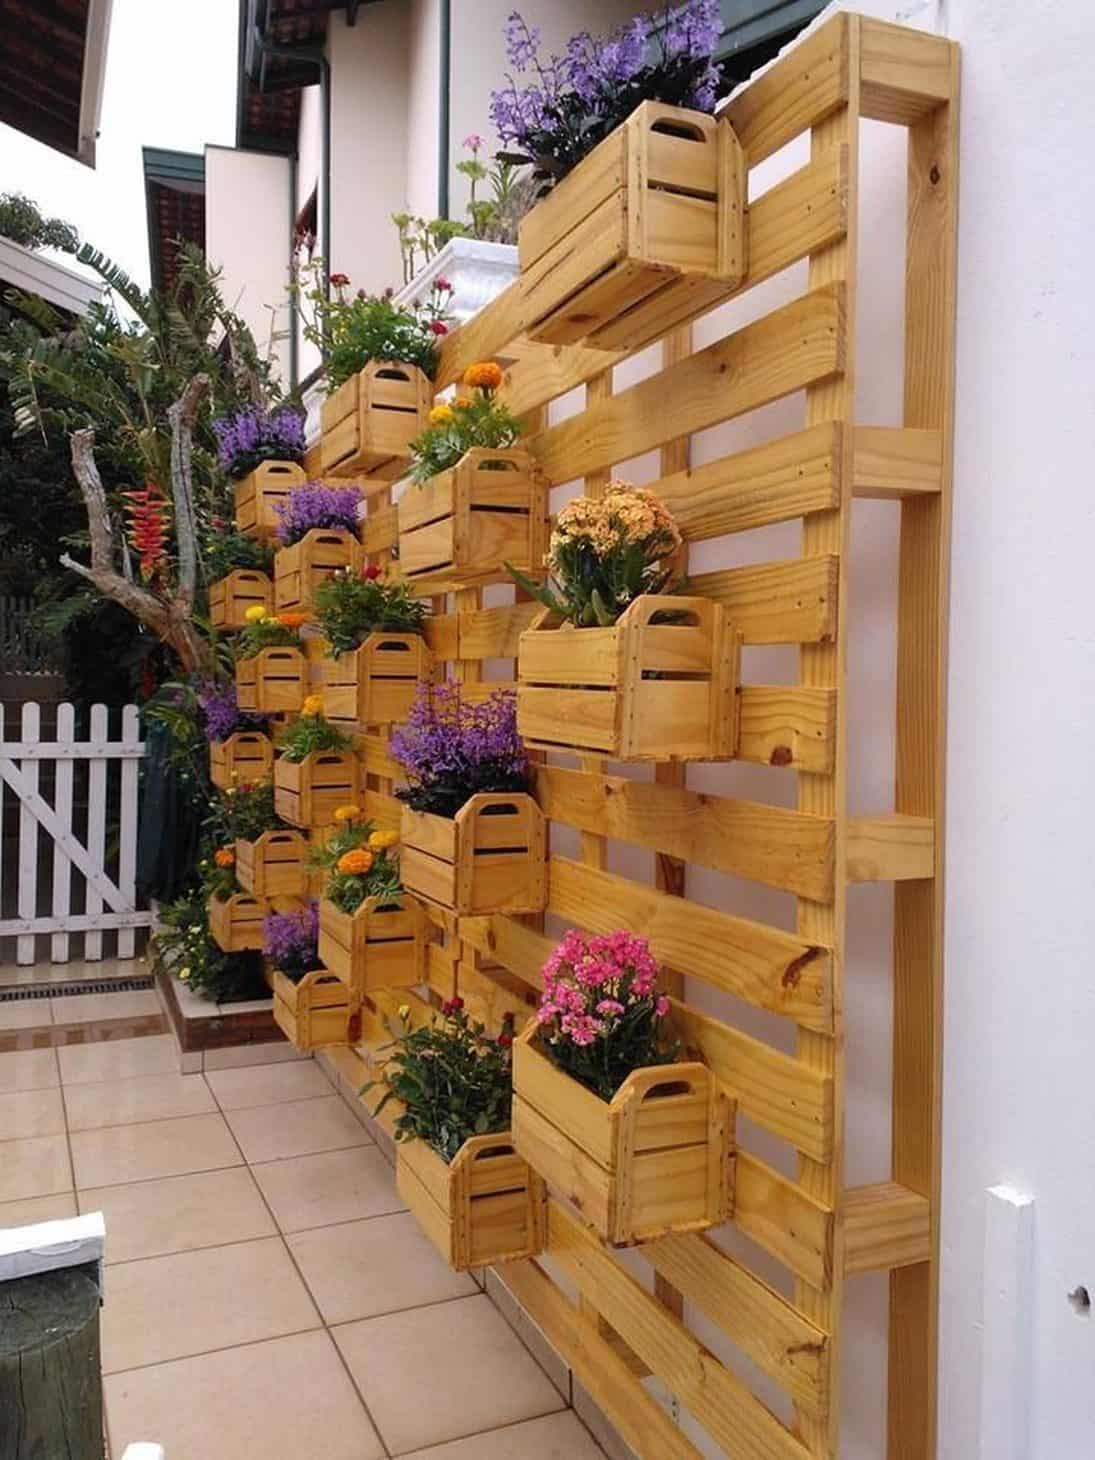 13-mix-and-match-baskets-full-of-blooms-vertical-gardens